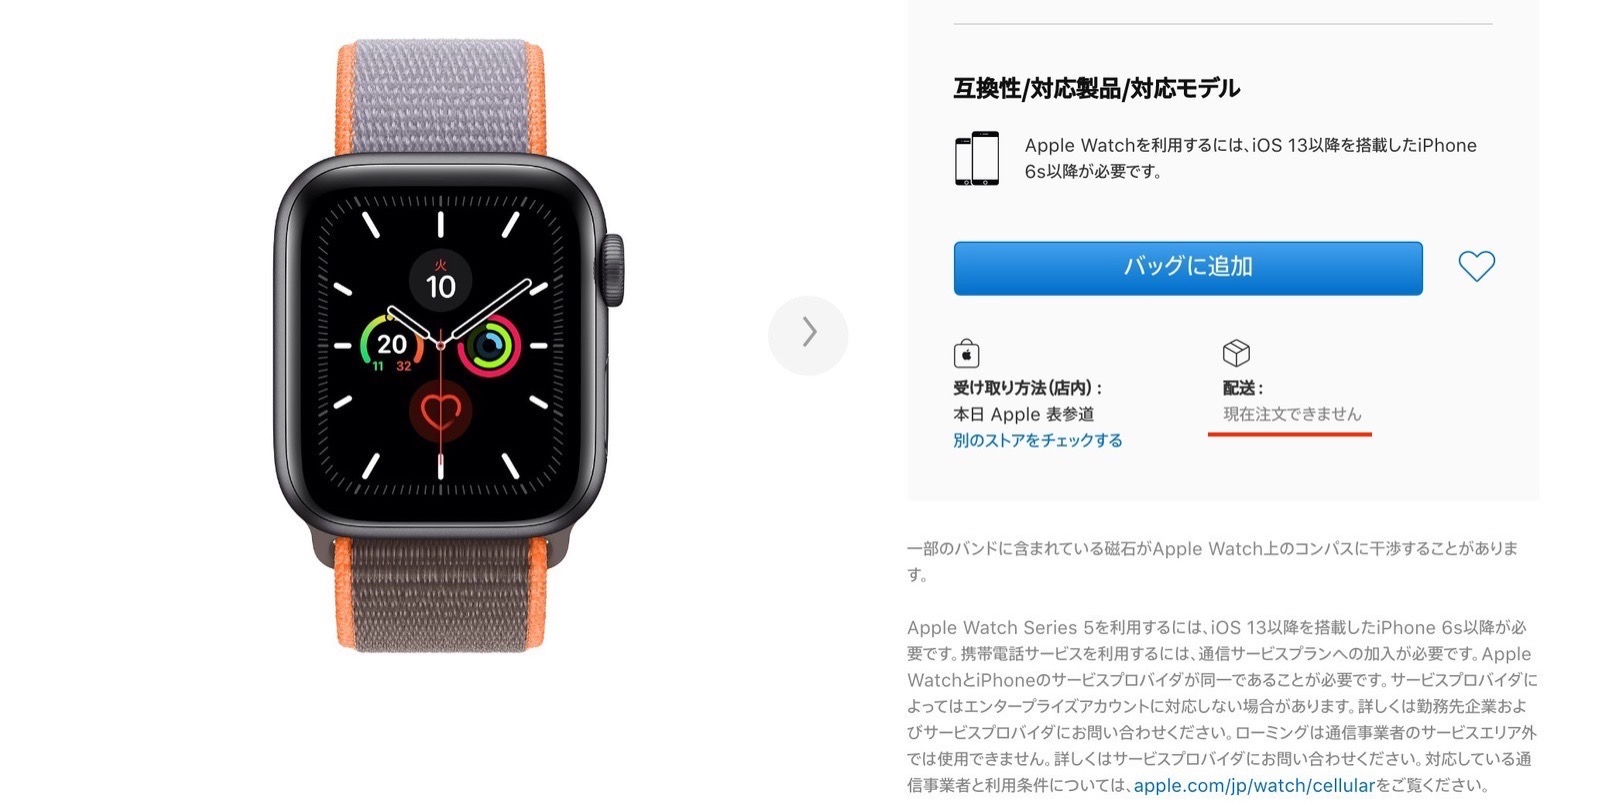 Apple Watch out of order Series 5 03